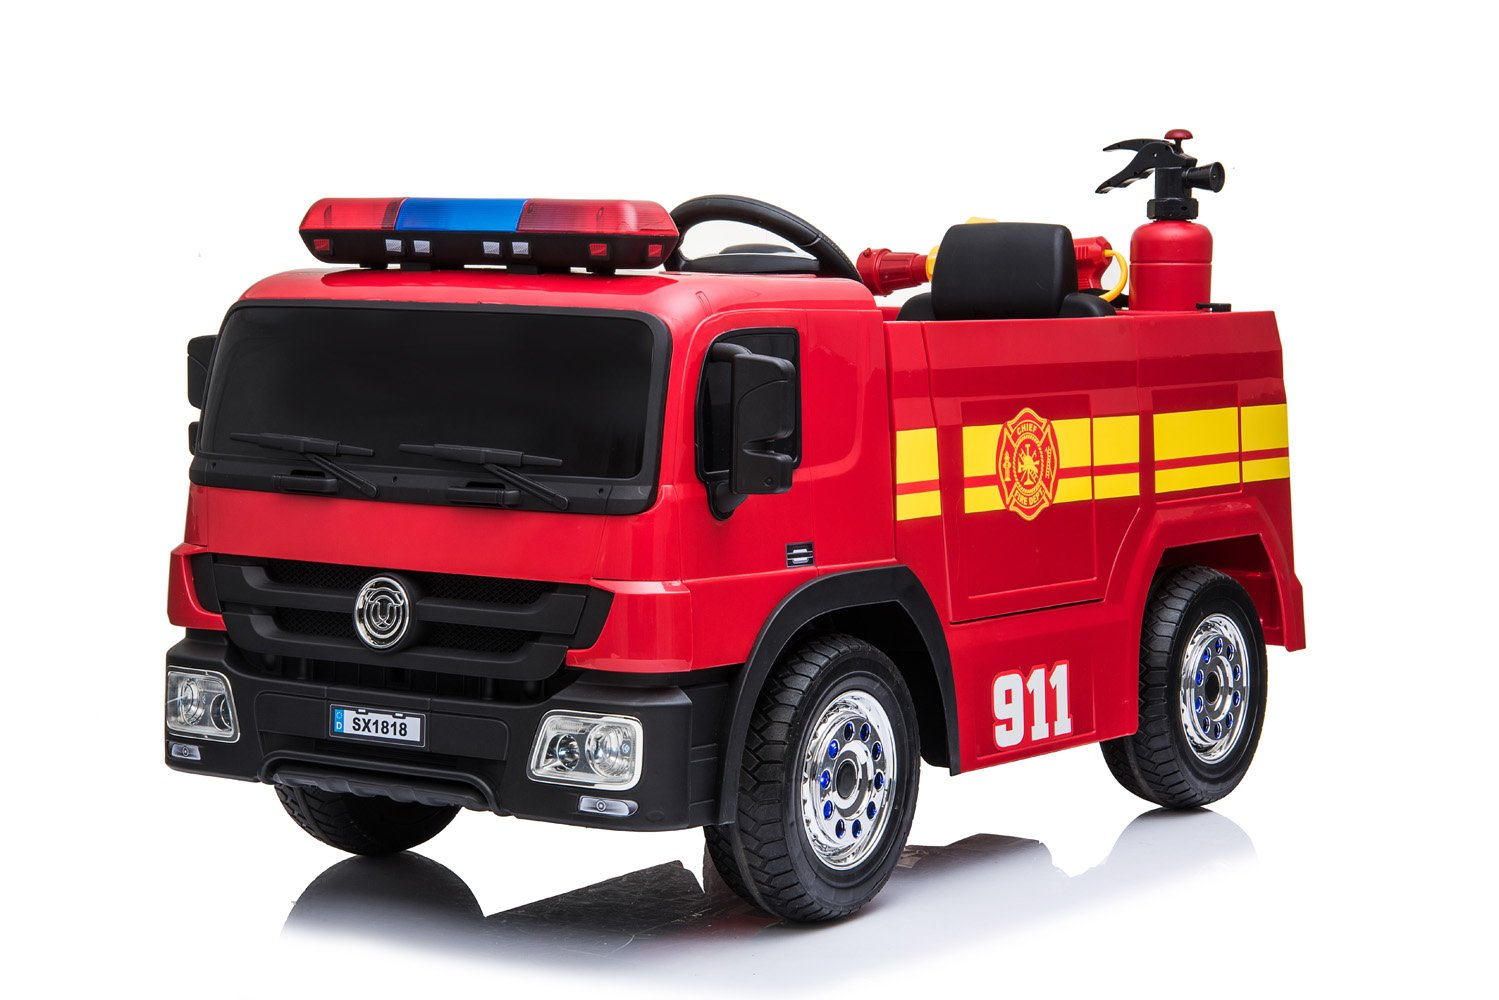 12V 10A Electric Ride on Fire Engine - SX1818 - GADGET EXPRESS®